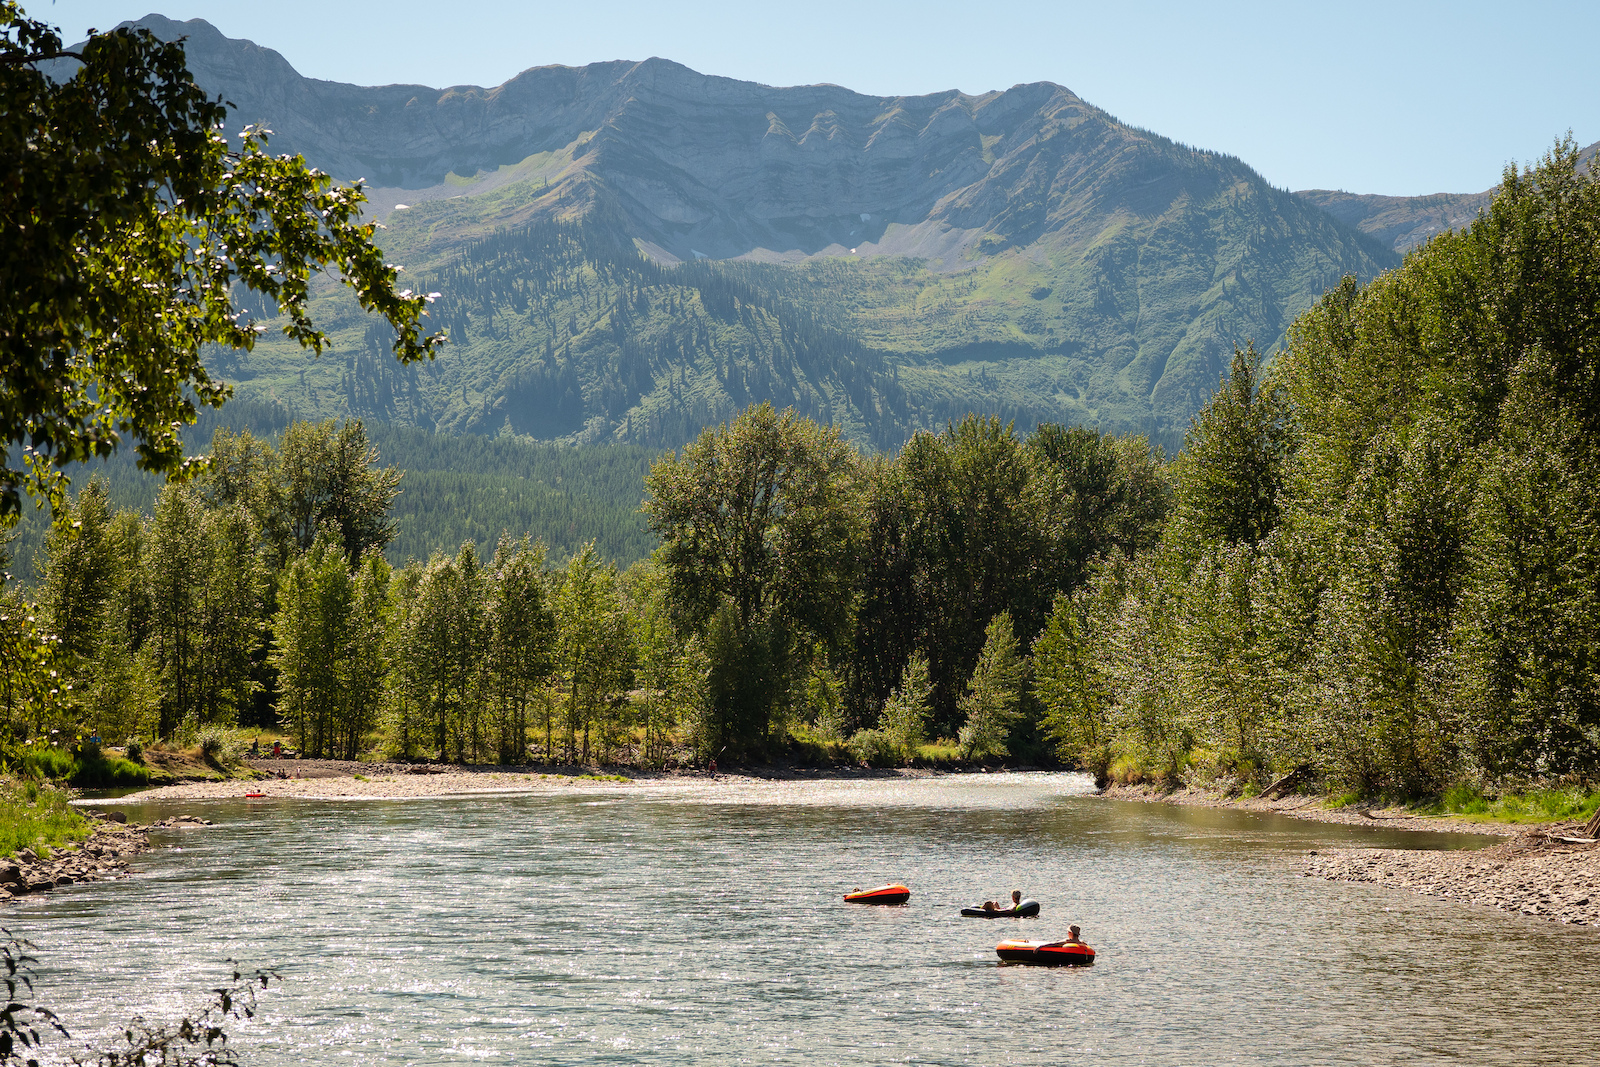 Lazy afternoon float down the Elk River